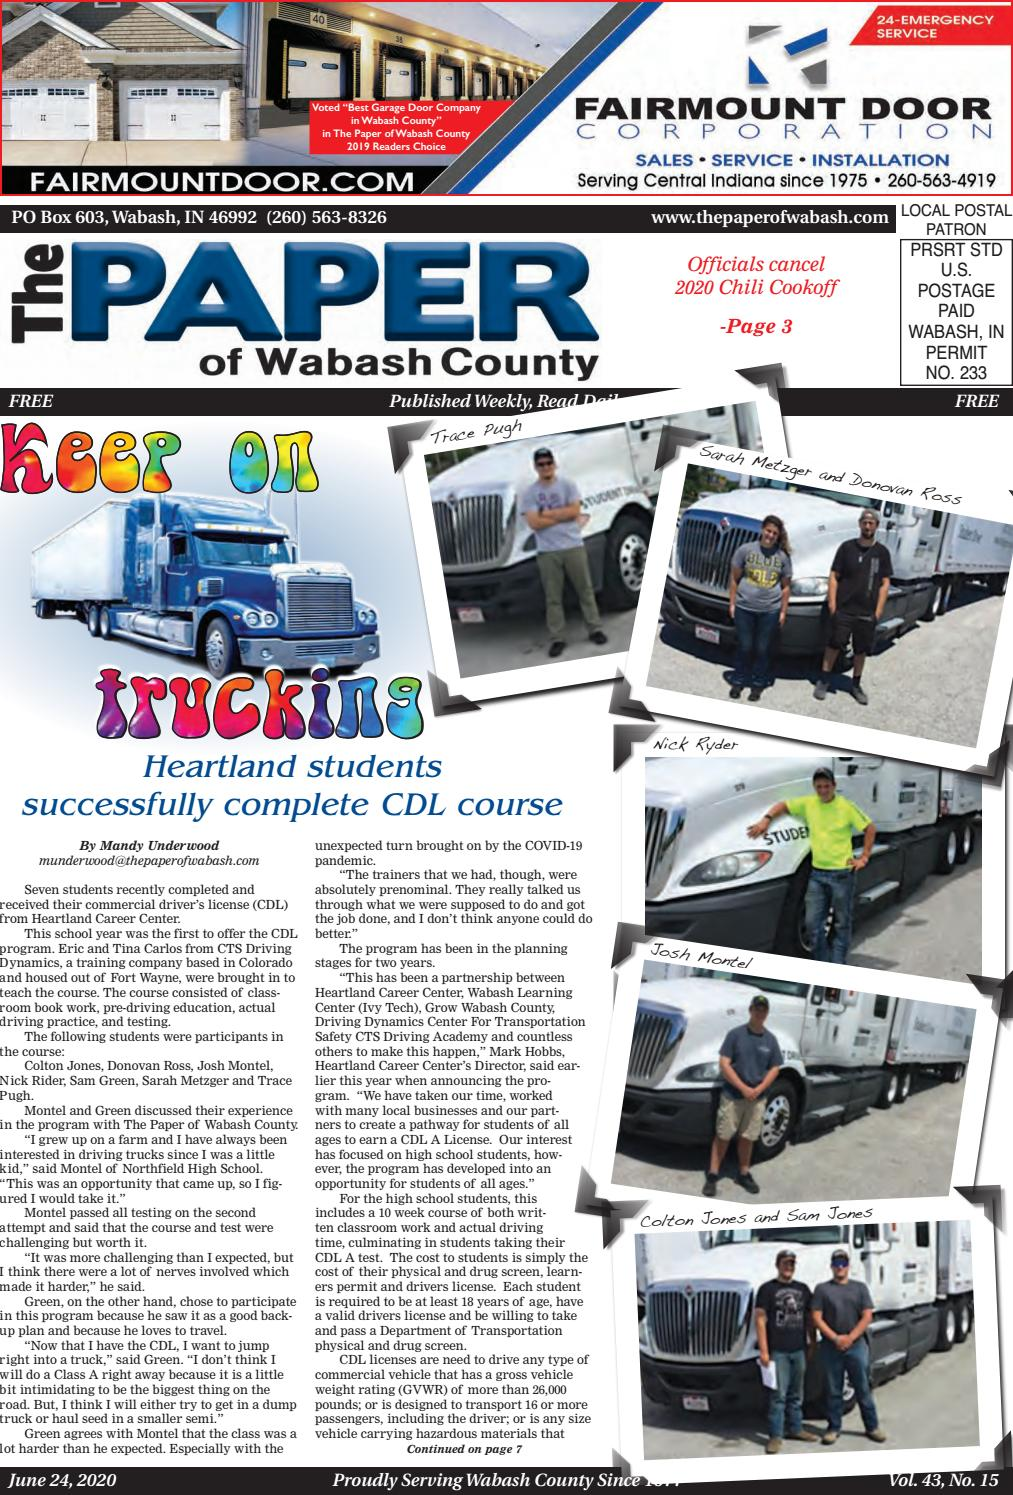 2020 Preferred Auto Ft Wayne Christmas Commercial The Paper of Wabash County   June 24, 2020 issue by The Paper of